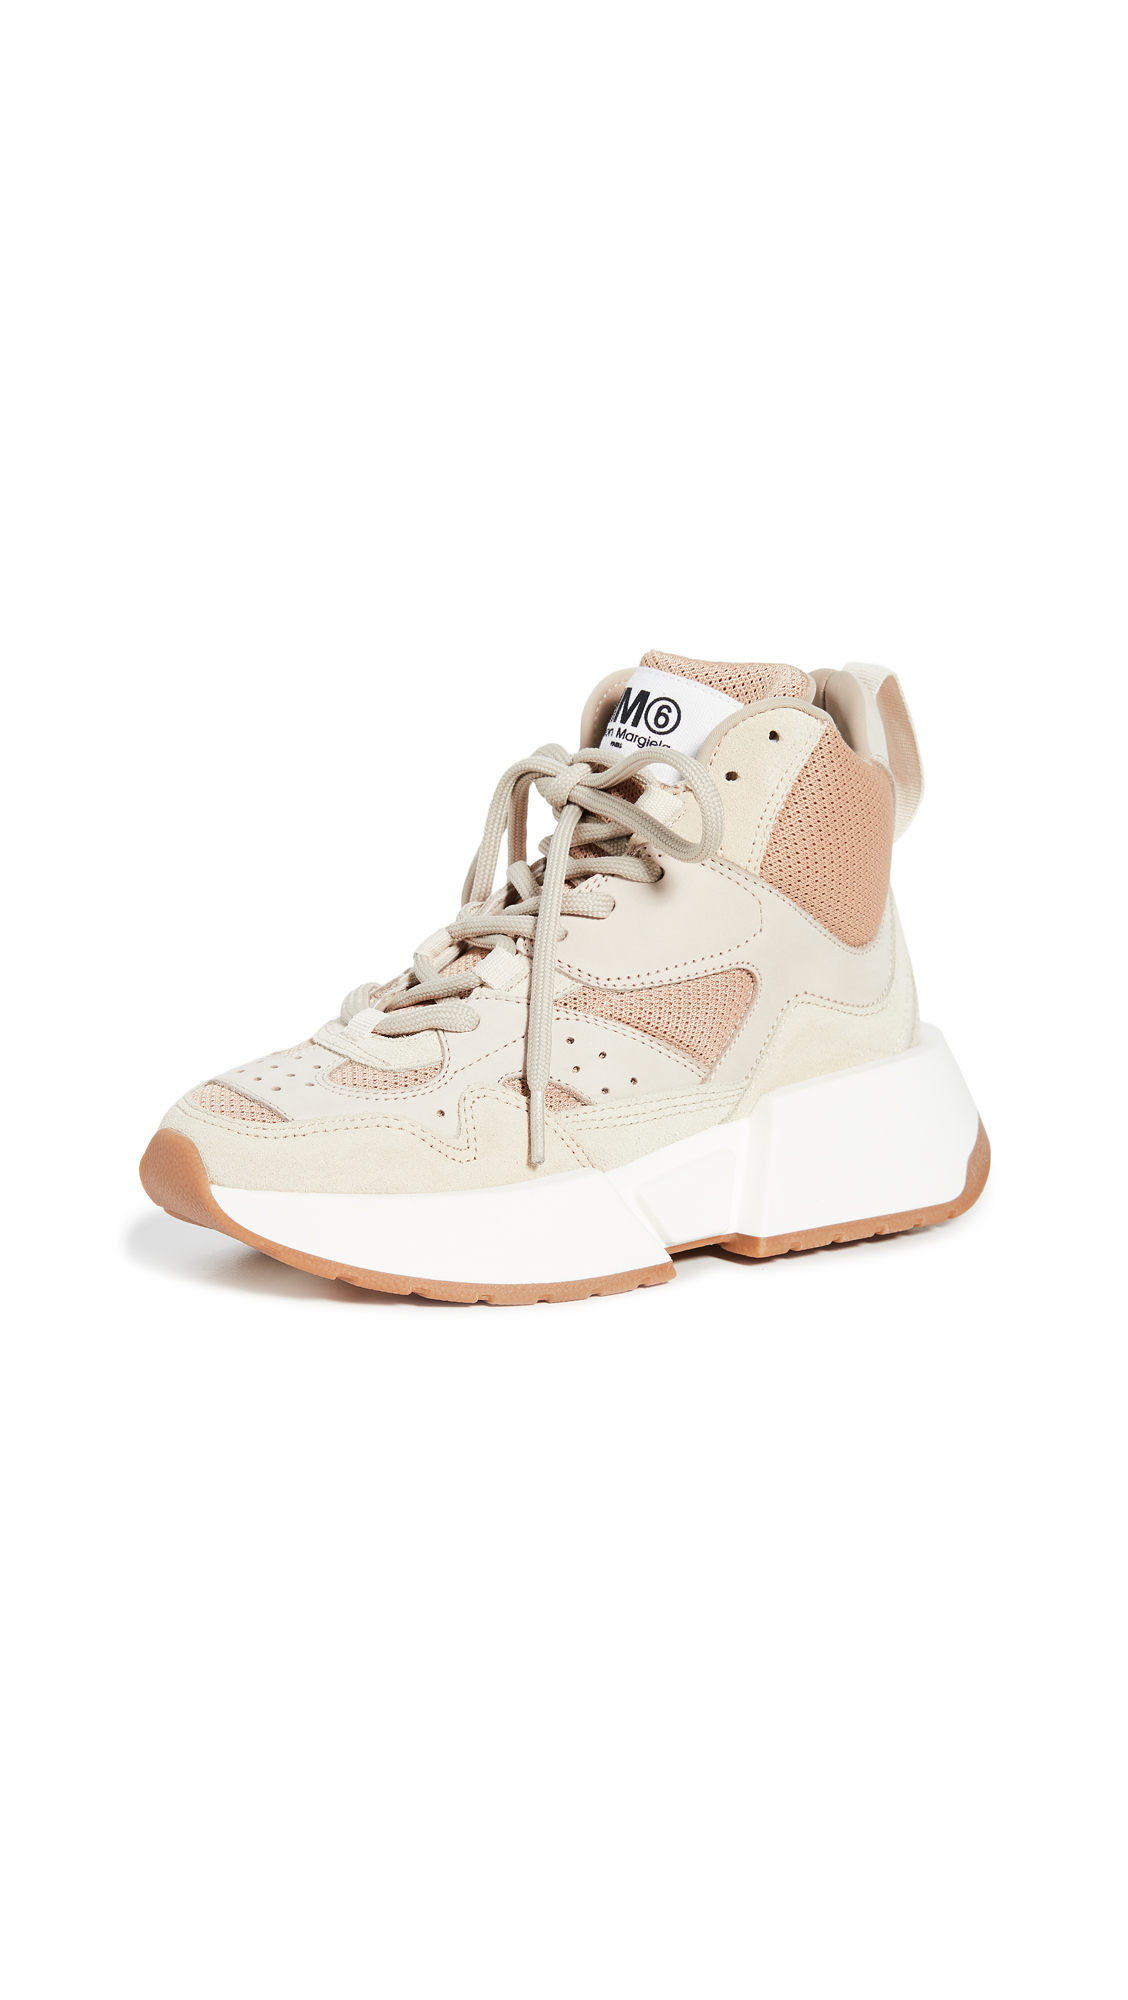 Buy MM6 Maison Margiela online - photo of MM6 Maison Margiela High Top Trainers